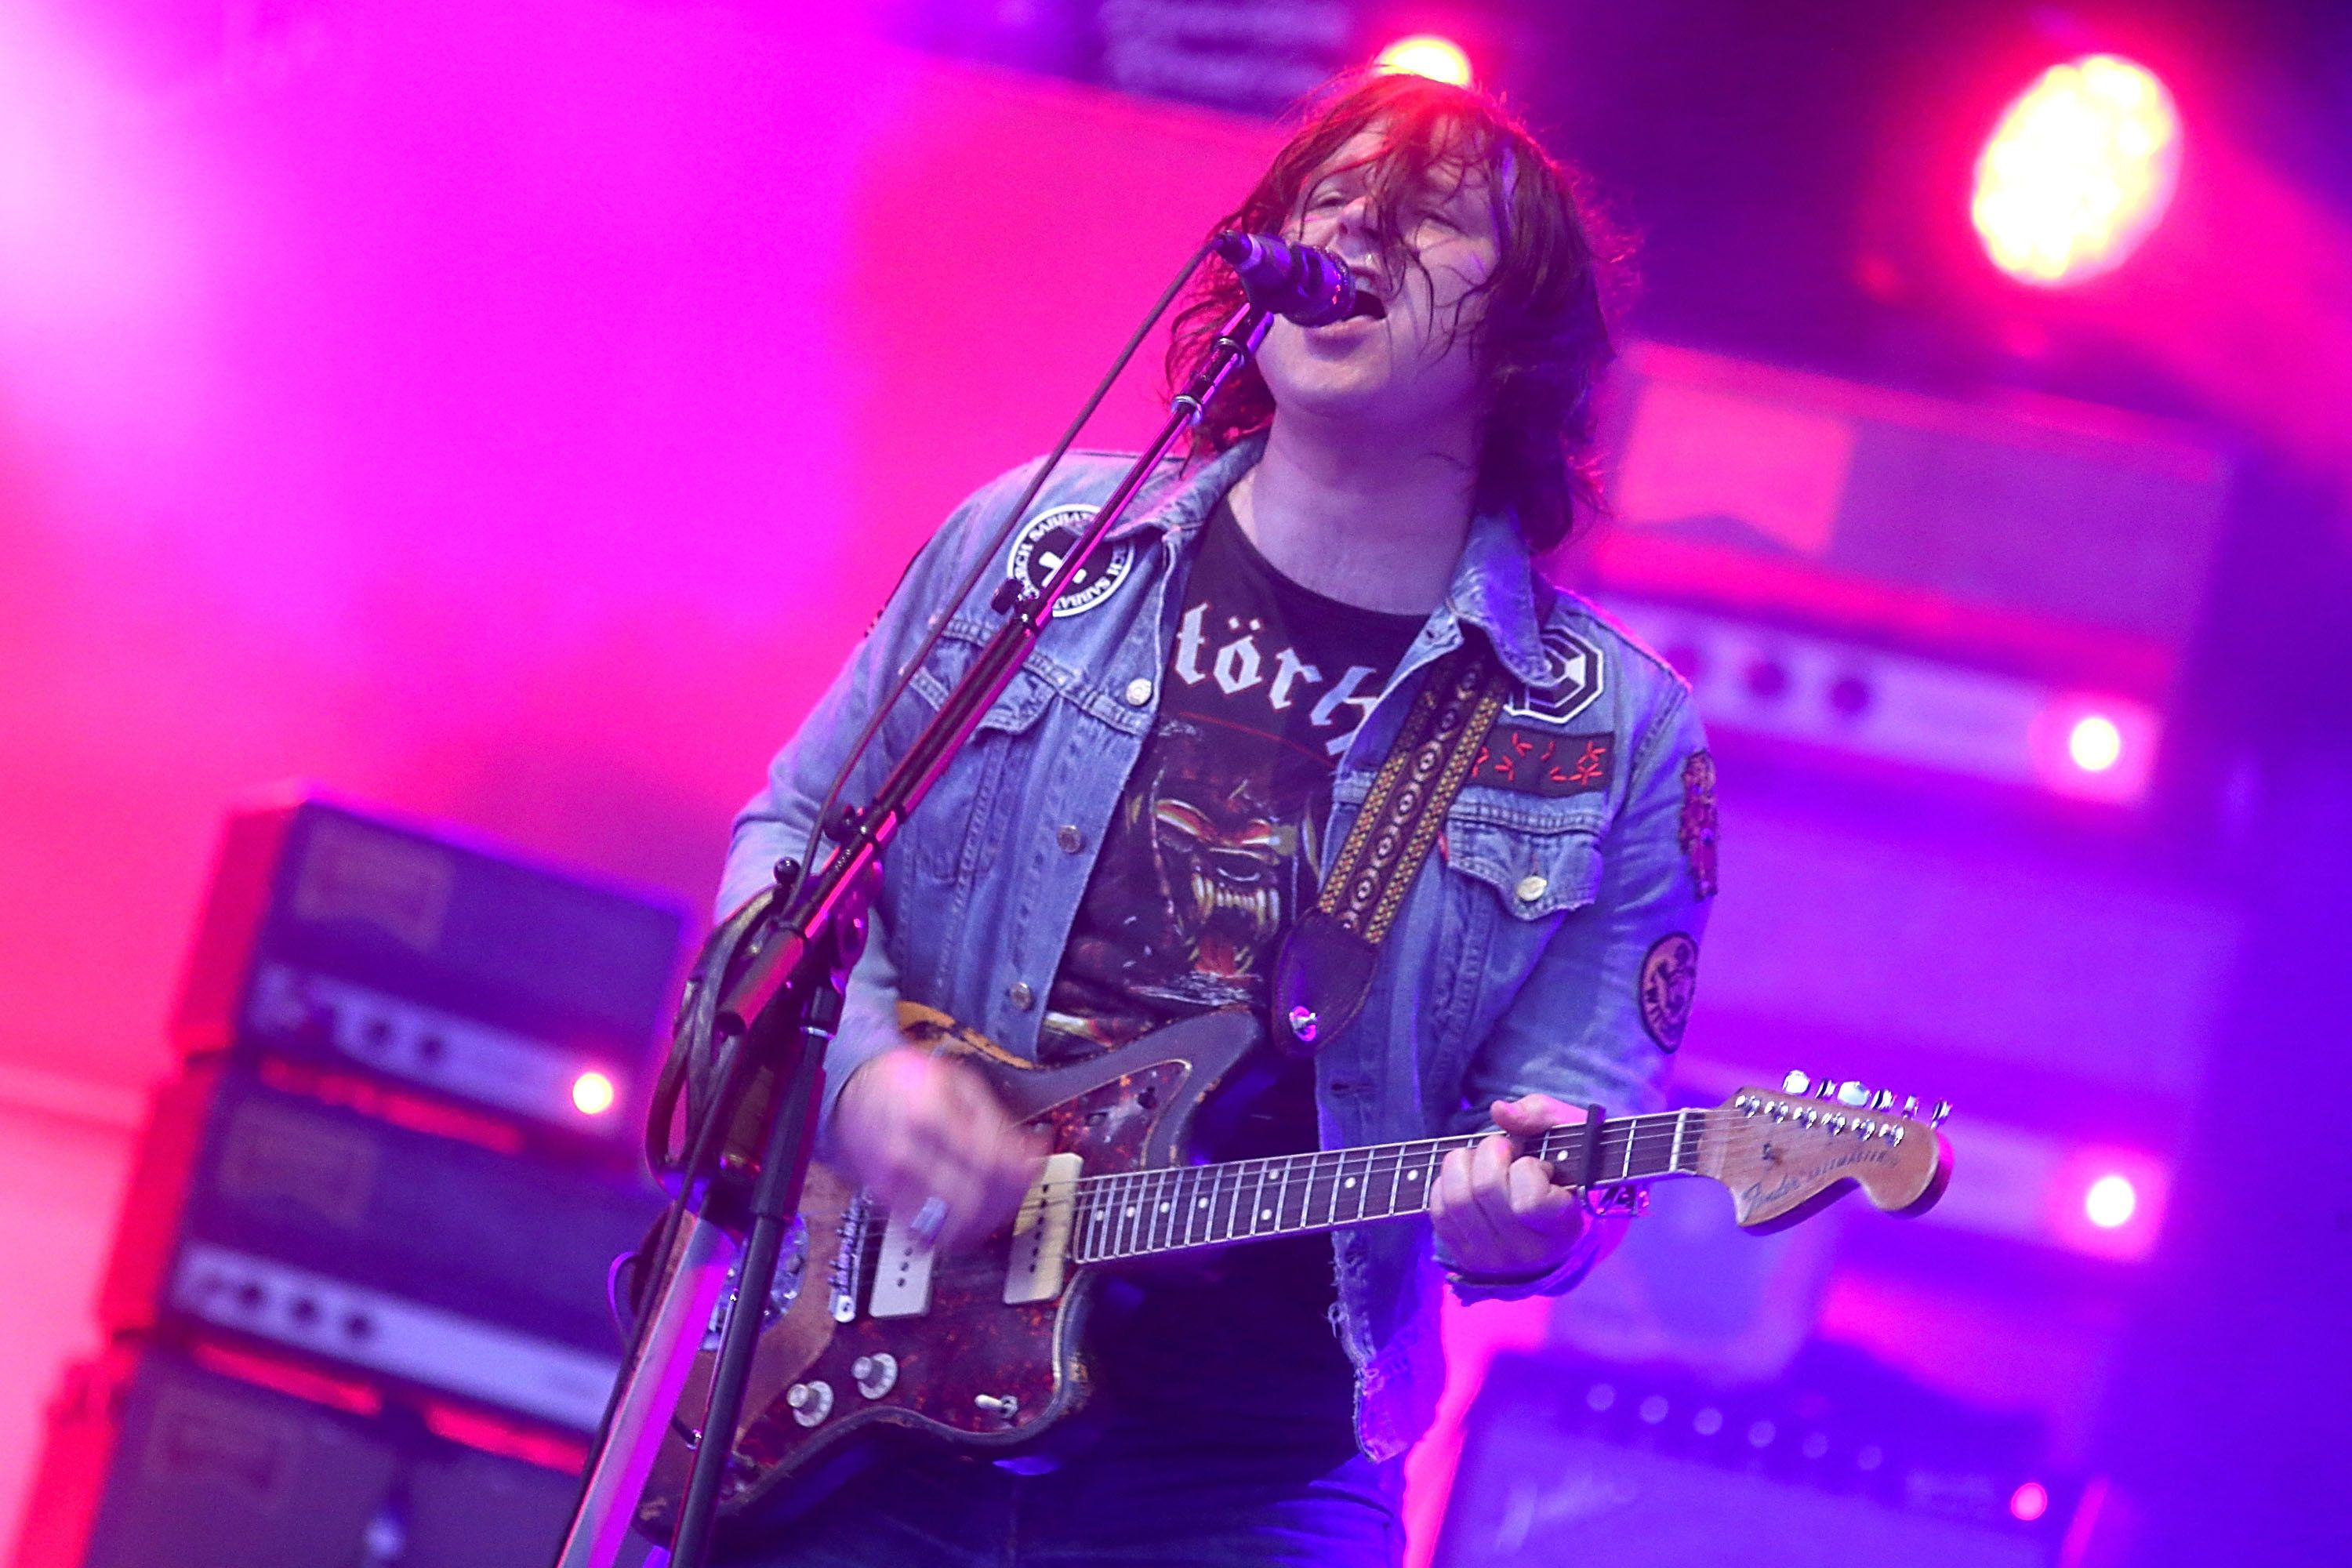 AUSTIN, TEXAS - OCTOBER 06:    Ryan Adams performs in concert on the first day of week one of the Austin City Limits Music Festival at Zilker Park on October 6, 2017 in Austin, Texas.  (Photo by Gary Miller/FilmMagic)